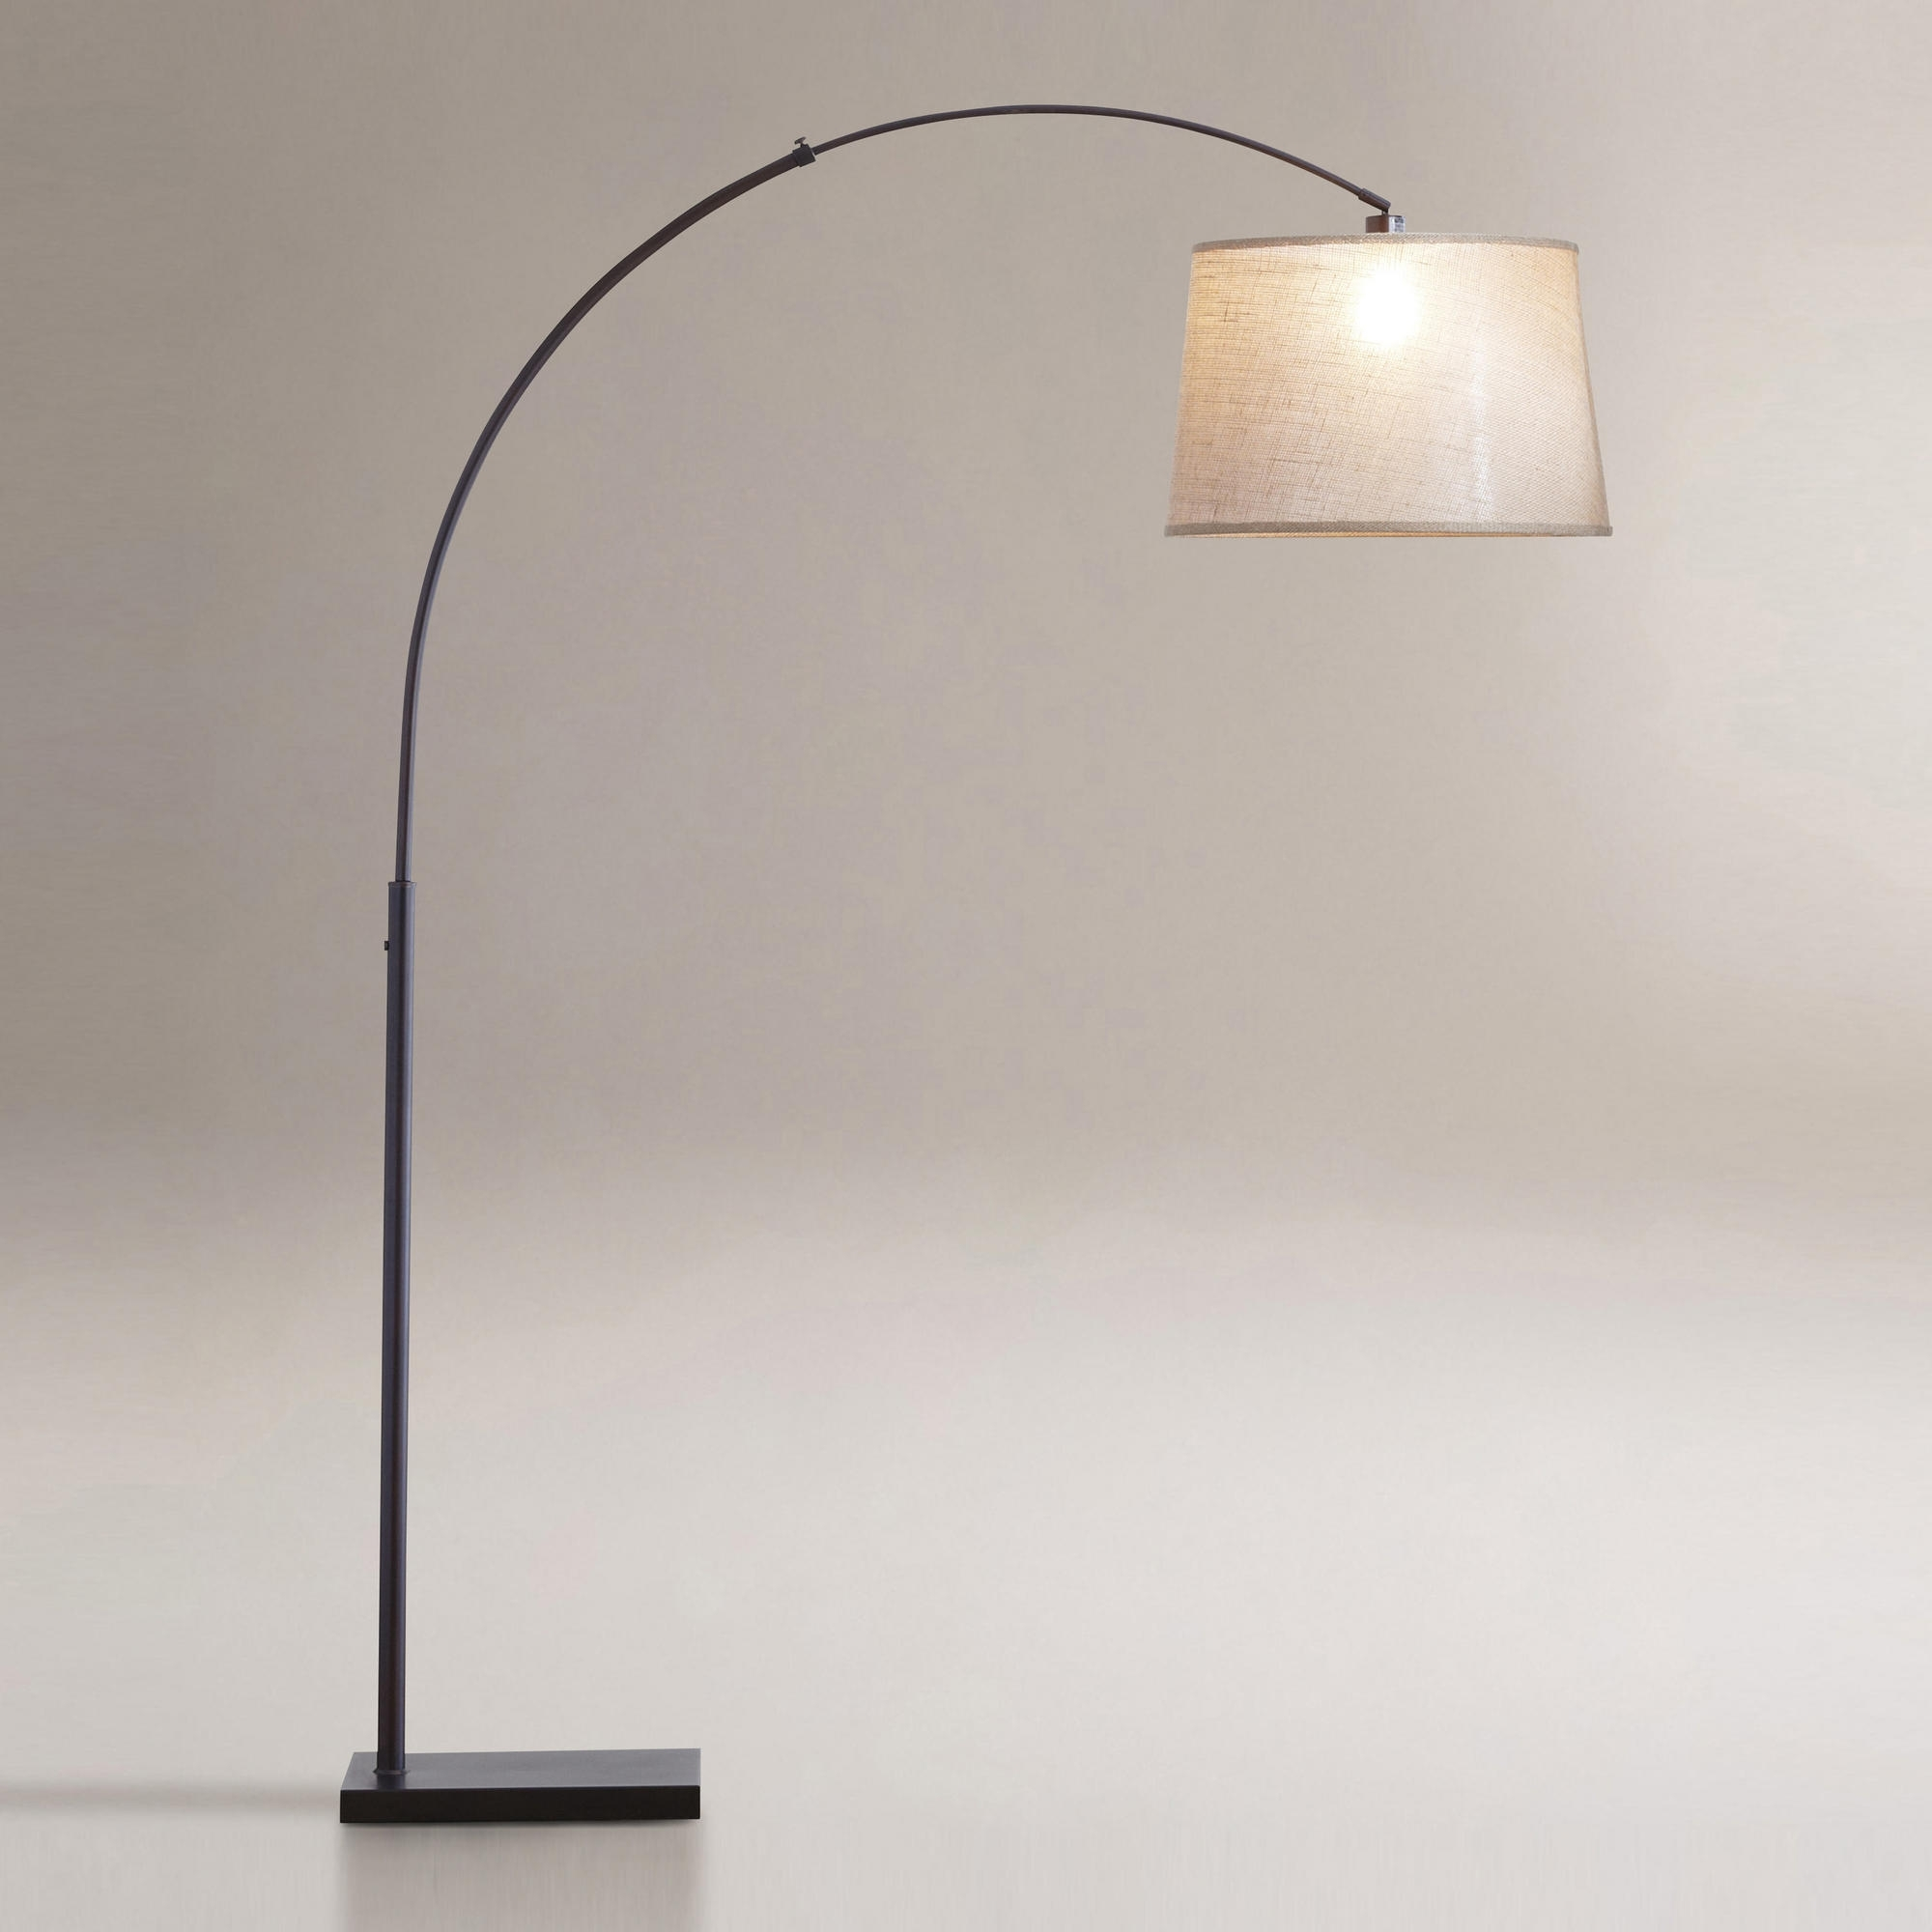 Endearing Cool Table Lamps Modern 2 Traditional Night Floor Lamp Regarding Newest Traditional Living Room Table Lamps (View 4 of 20)